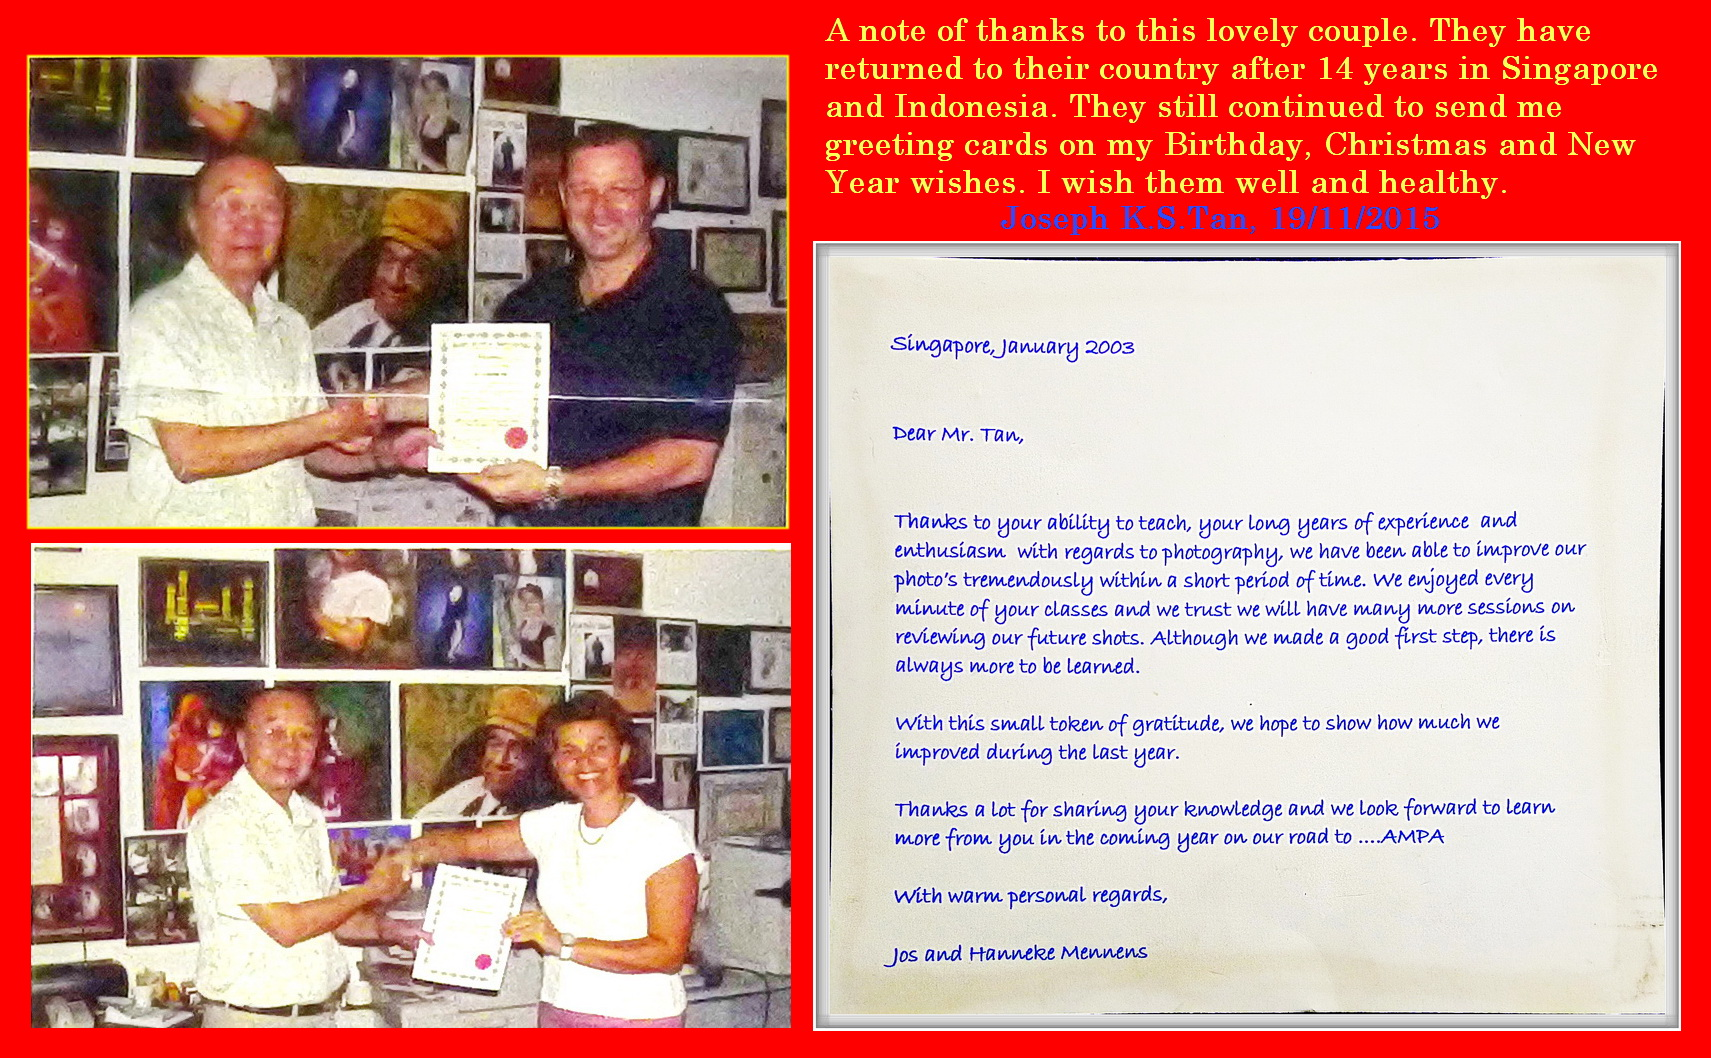 Testimonial From Jos and Hanneke Mennens